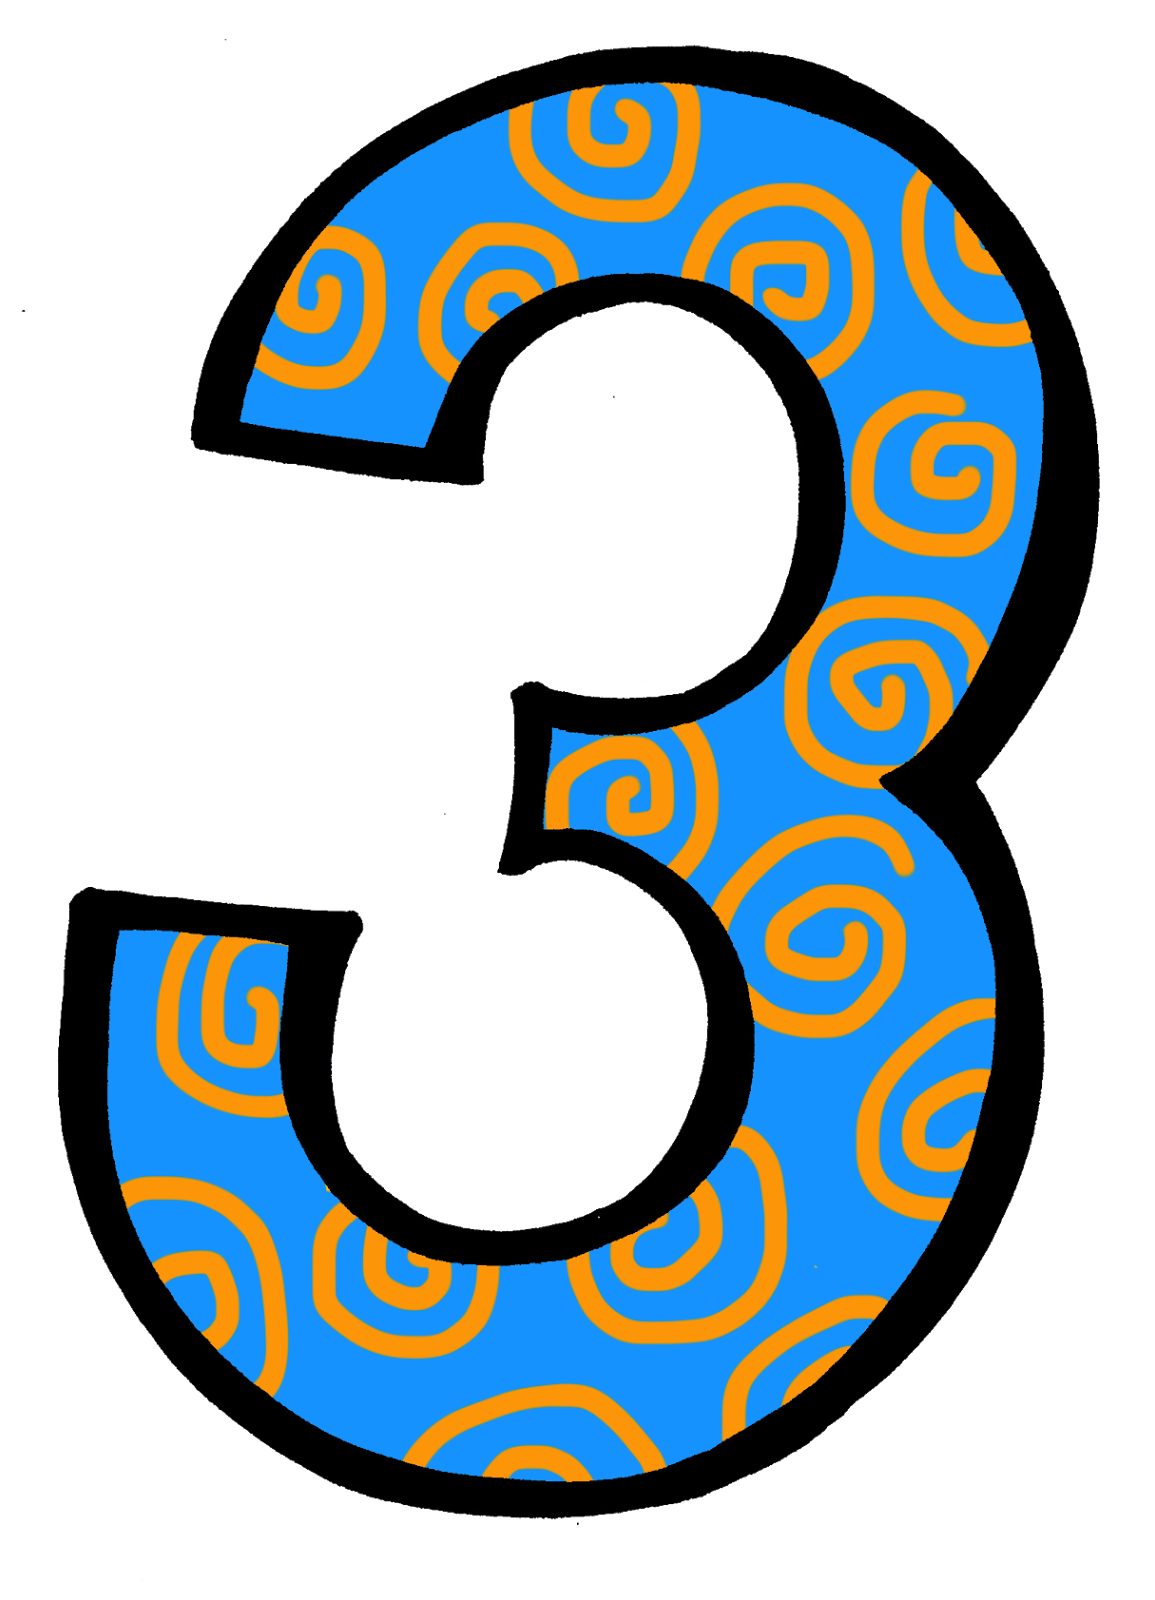 Number 1 clipart individual number.  collection of numbers